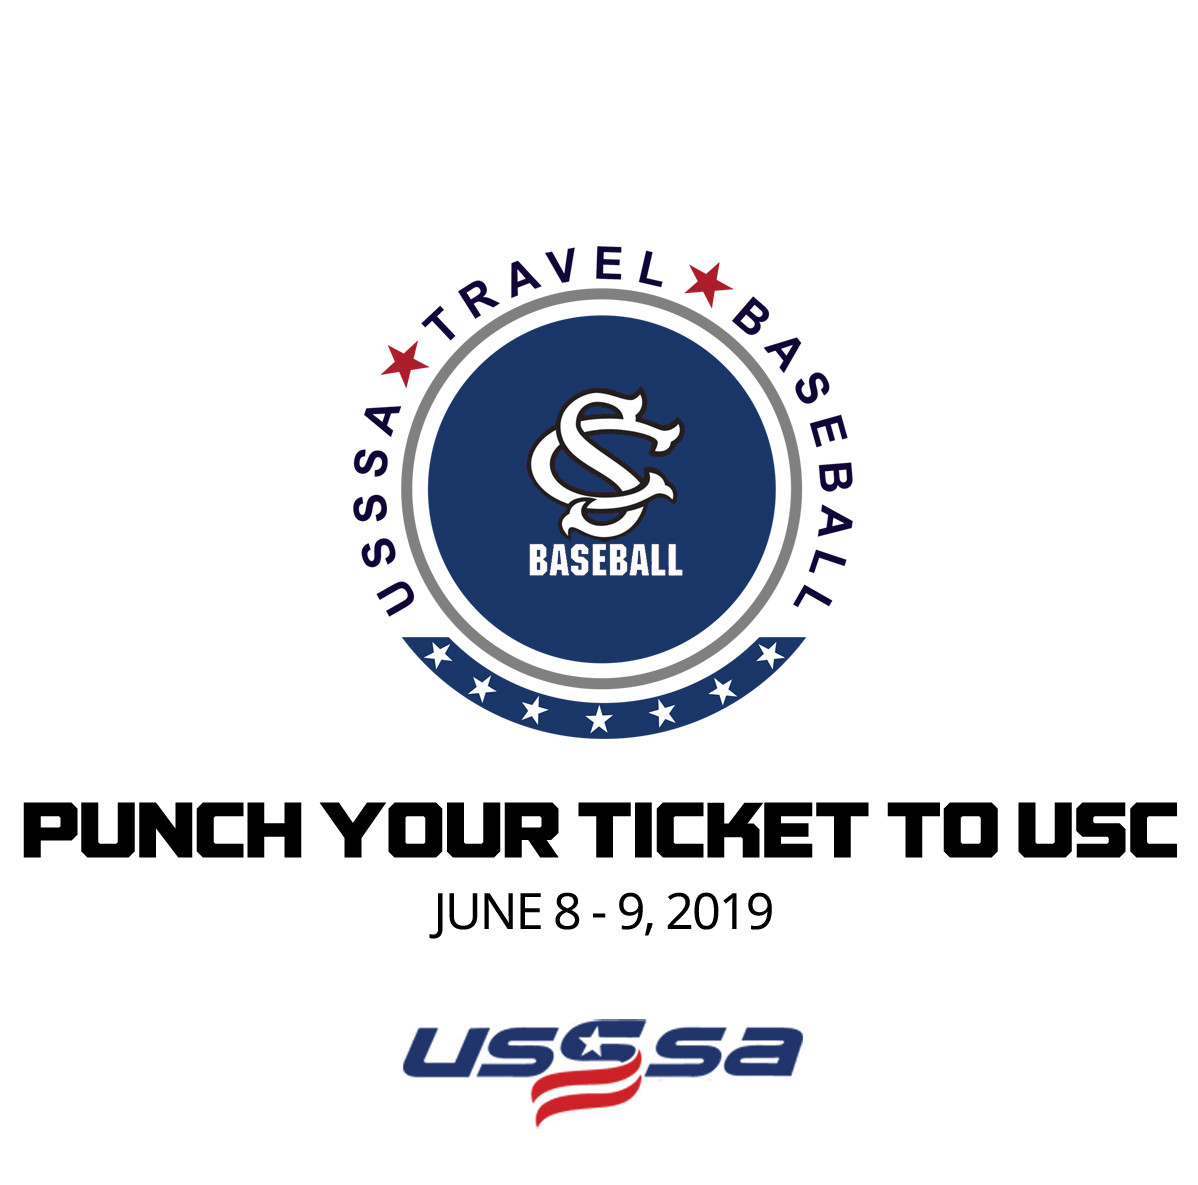 UPSTATE - PUNCH YOUR TICKET